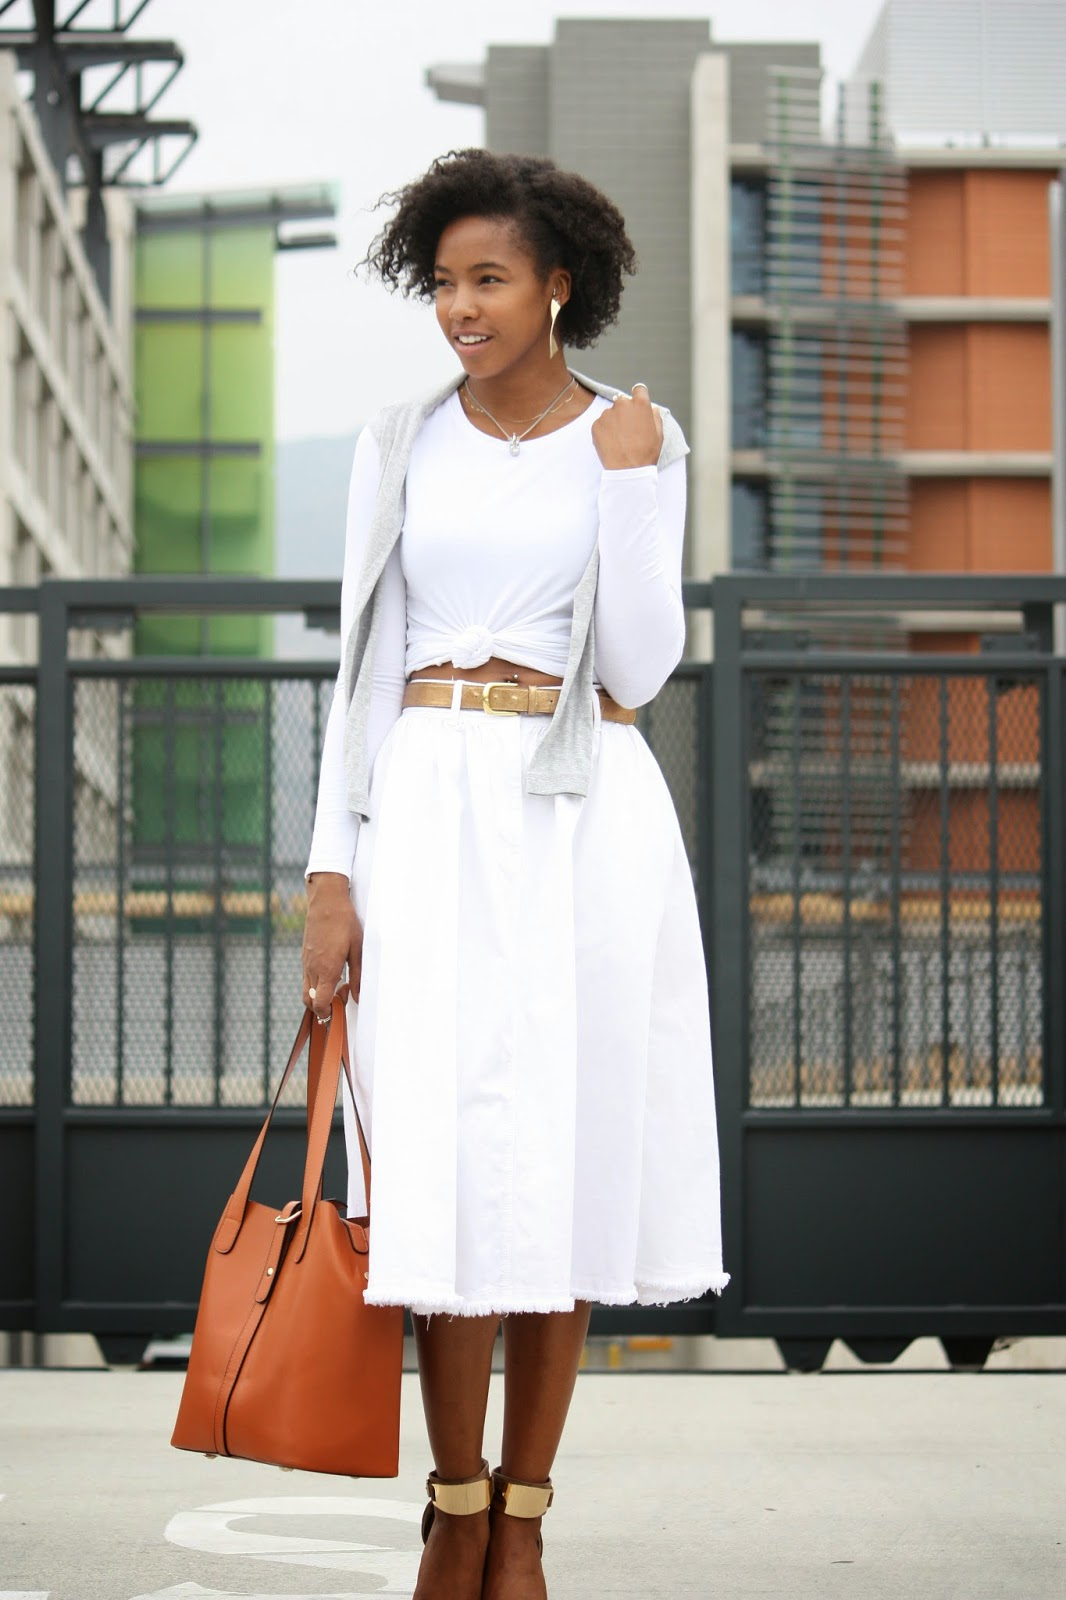 Fashion blogger style ootd, Marquise C Brown personal style blog